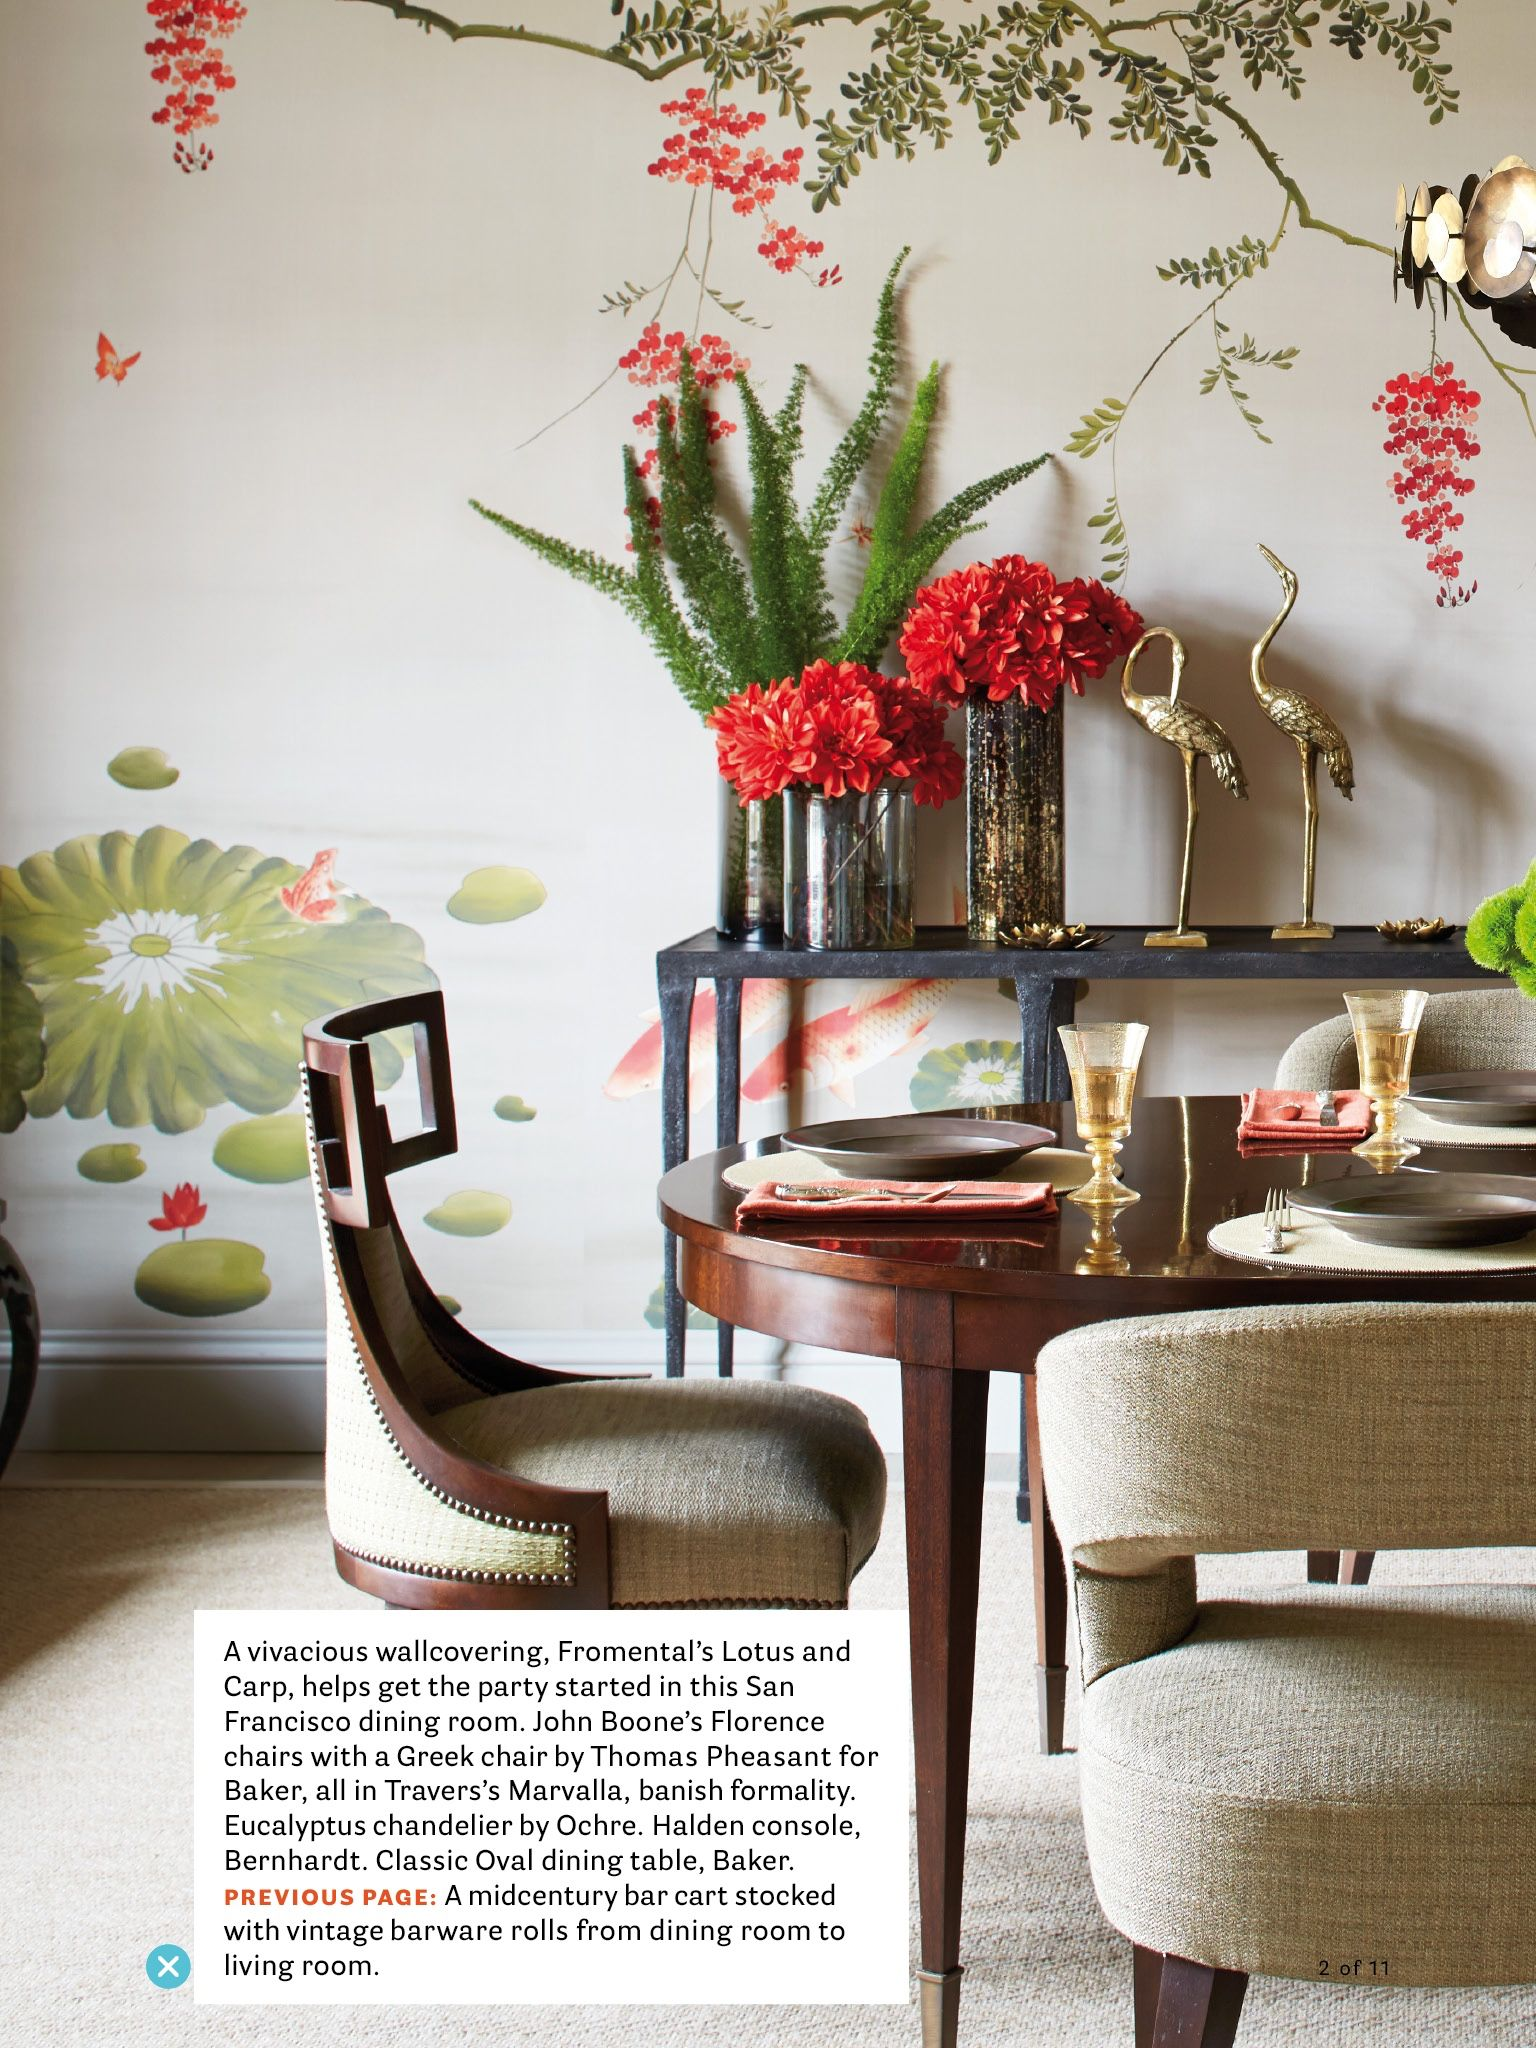 Fromental's Lotus and carp wallpaper  Wow! I saw this in the